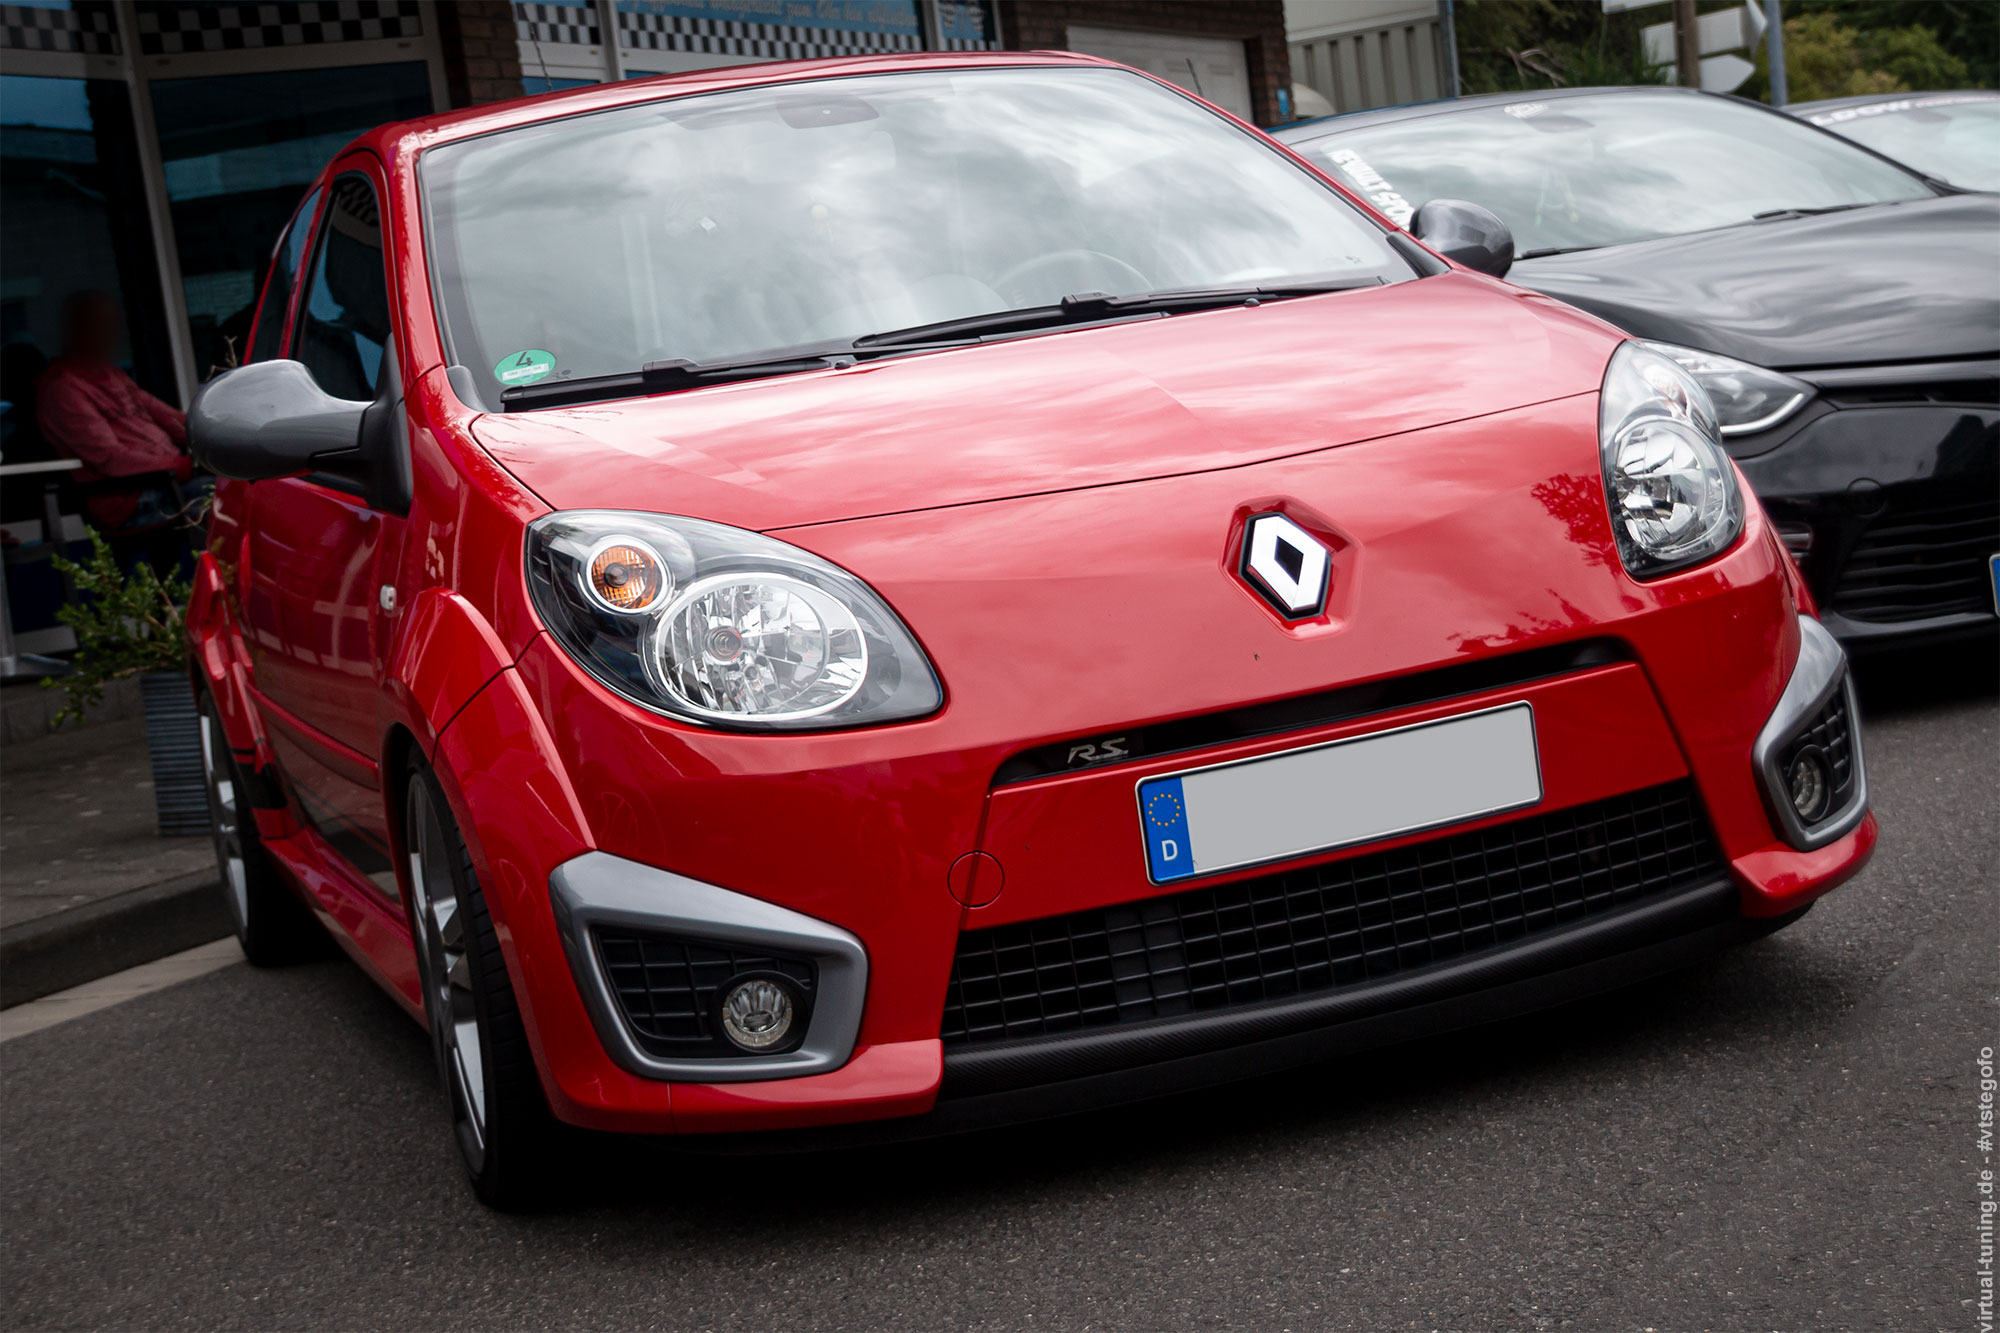 Renault Twingo R.S. - R.S. meets Cafe 477